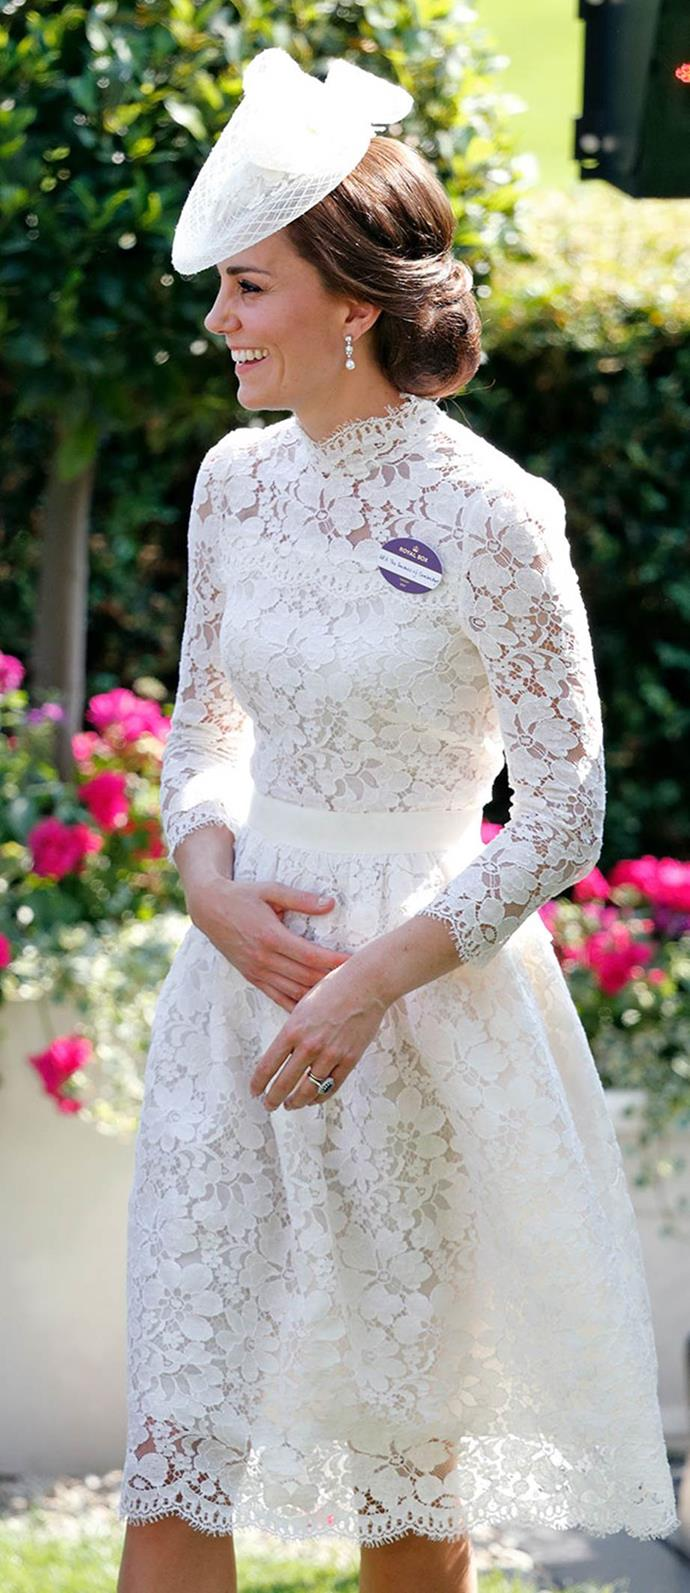 Duchess Catherine in a bespoke Alexander McQueen floral lace dress and a white topper adorned with pearls and a lace bow, at the Royal Ascot in 2017.